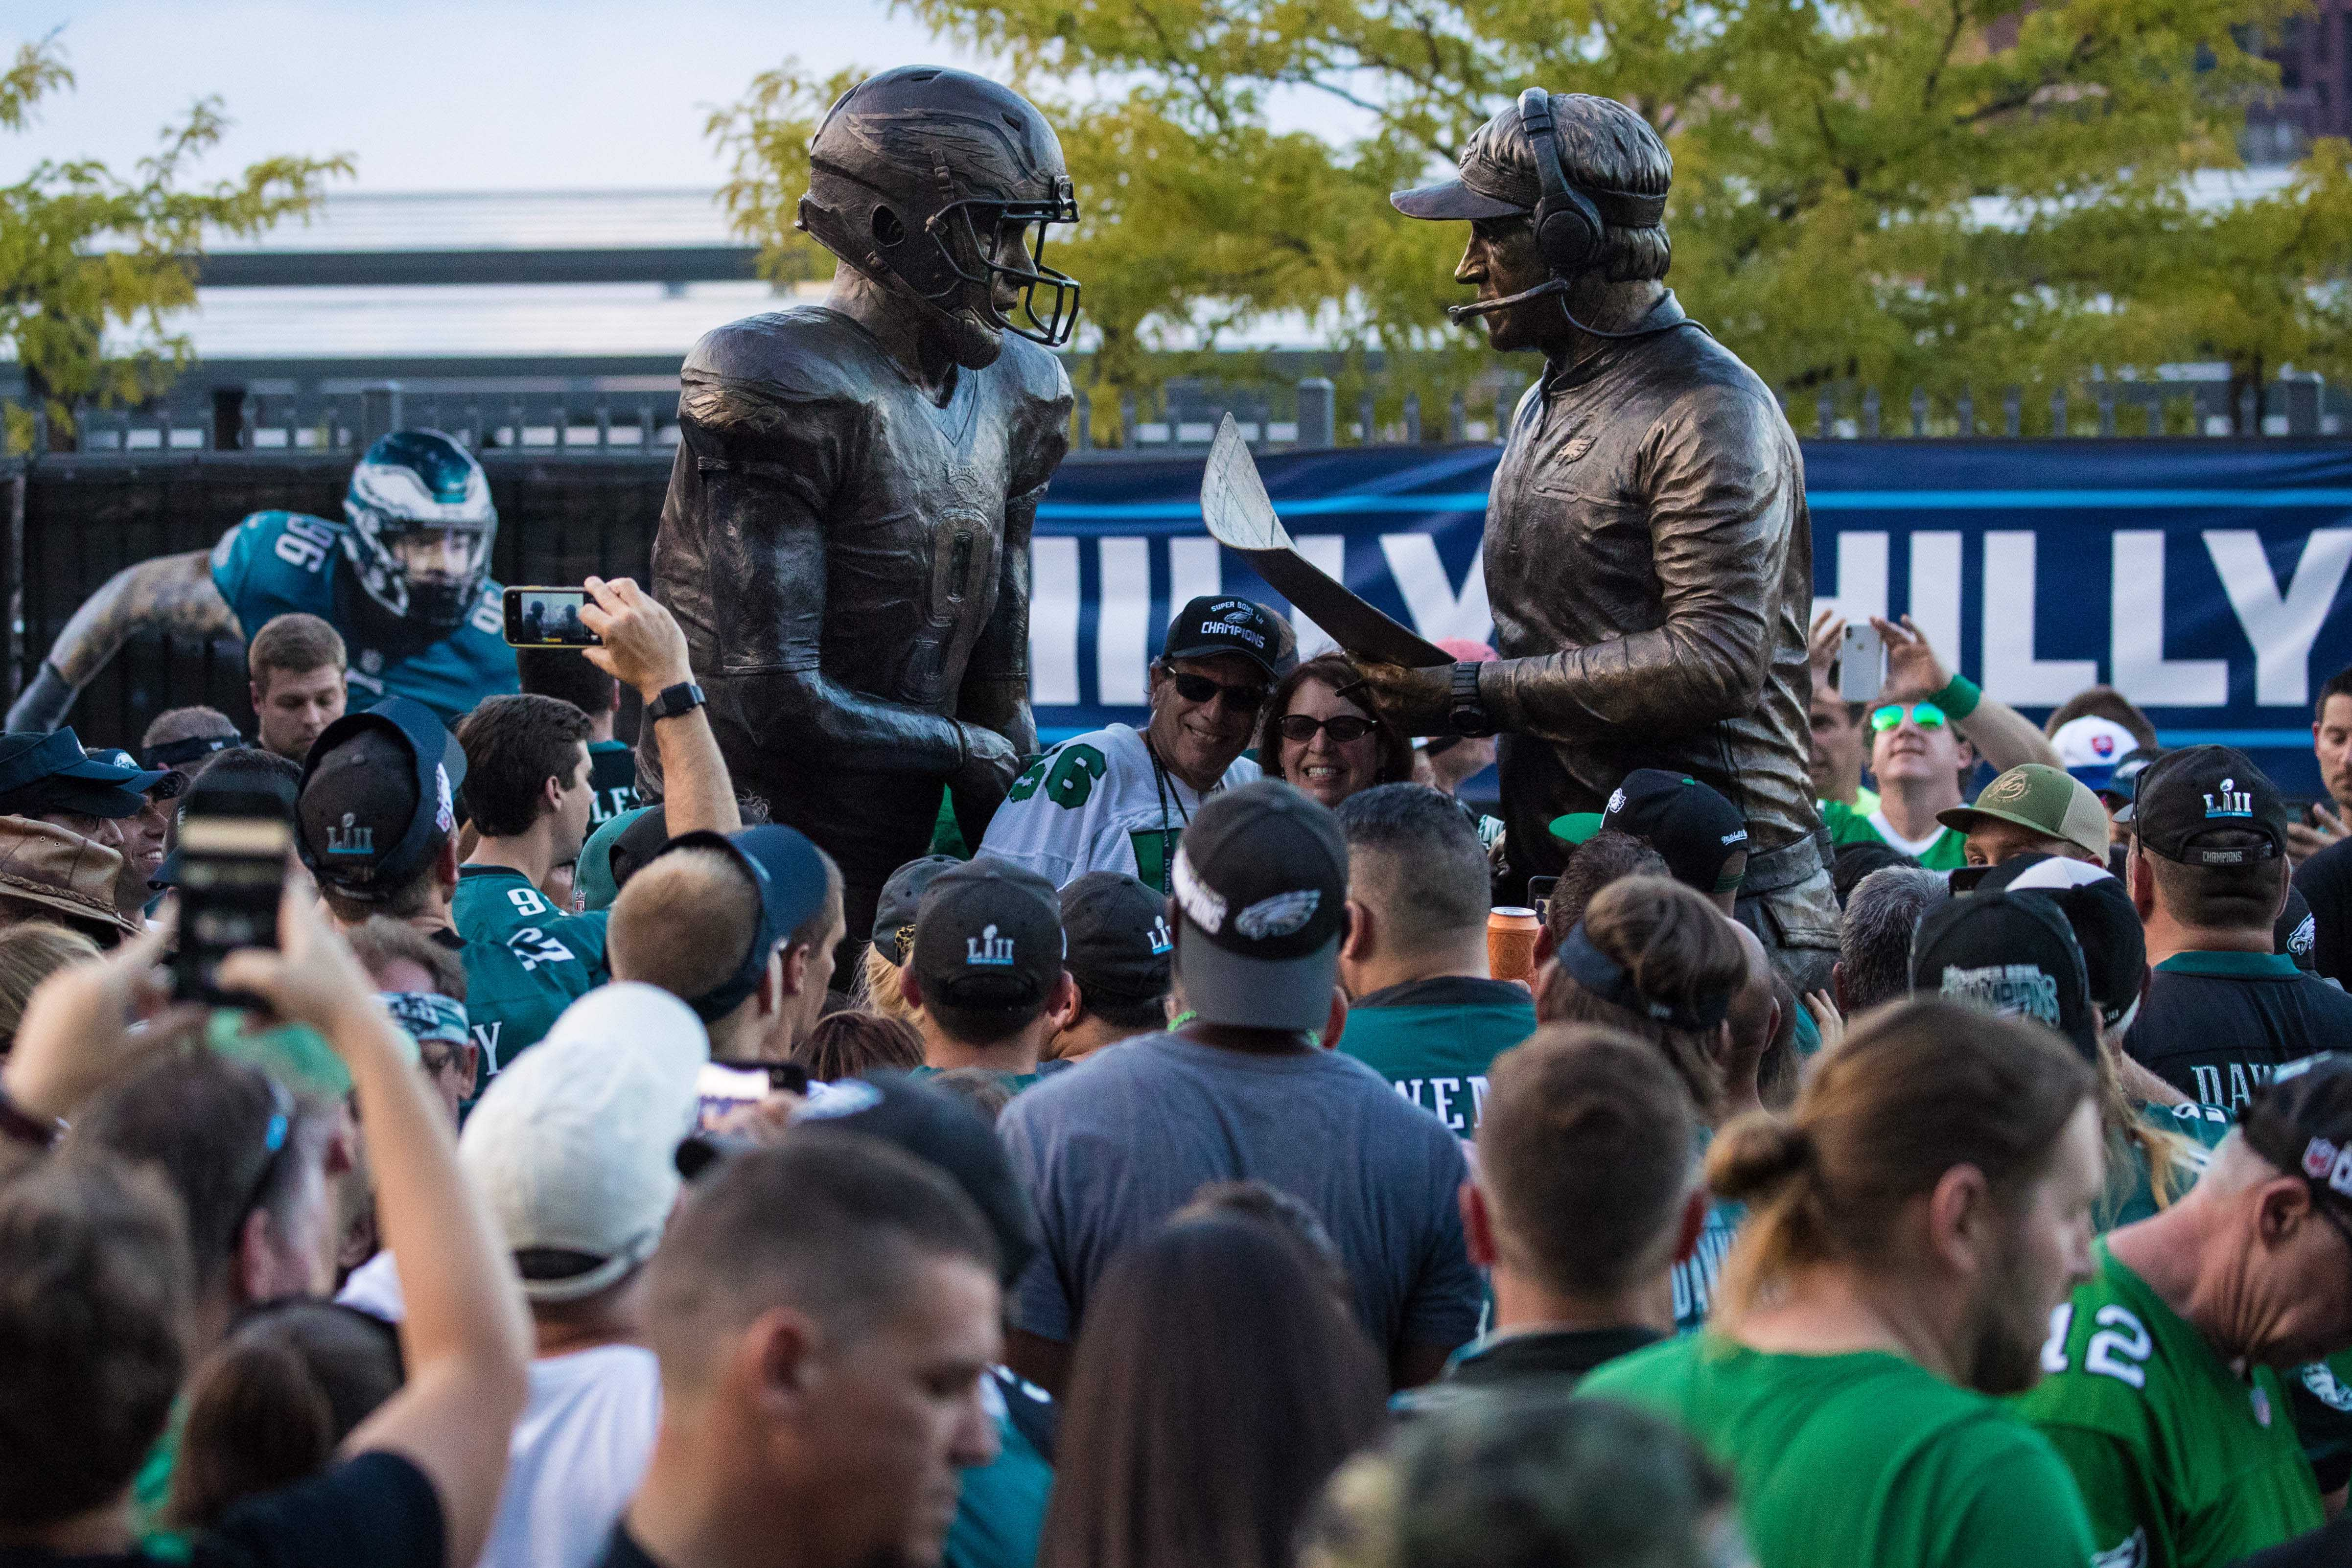 Philadelphia Eagles fans crowd around a new statue depicting head coach Doug Pederson (right) and quarterback Nick Roles (left) during Super Bowl LII. - Packers QB Carted Off In Clash With Bears